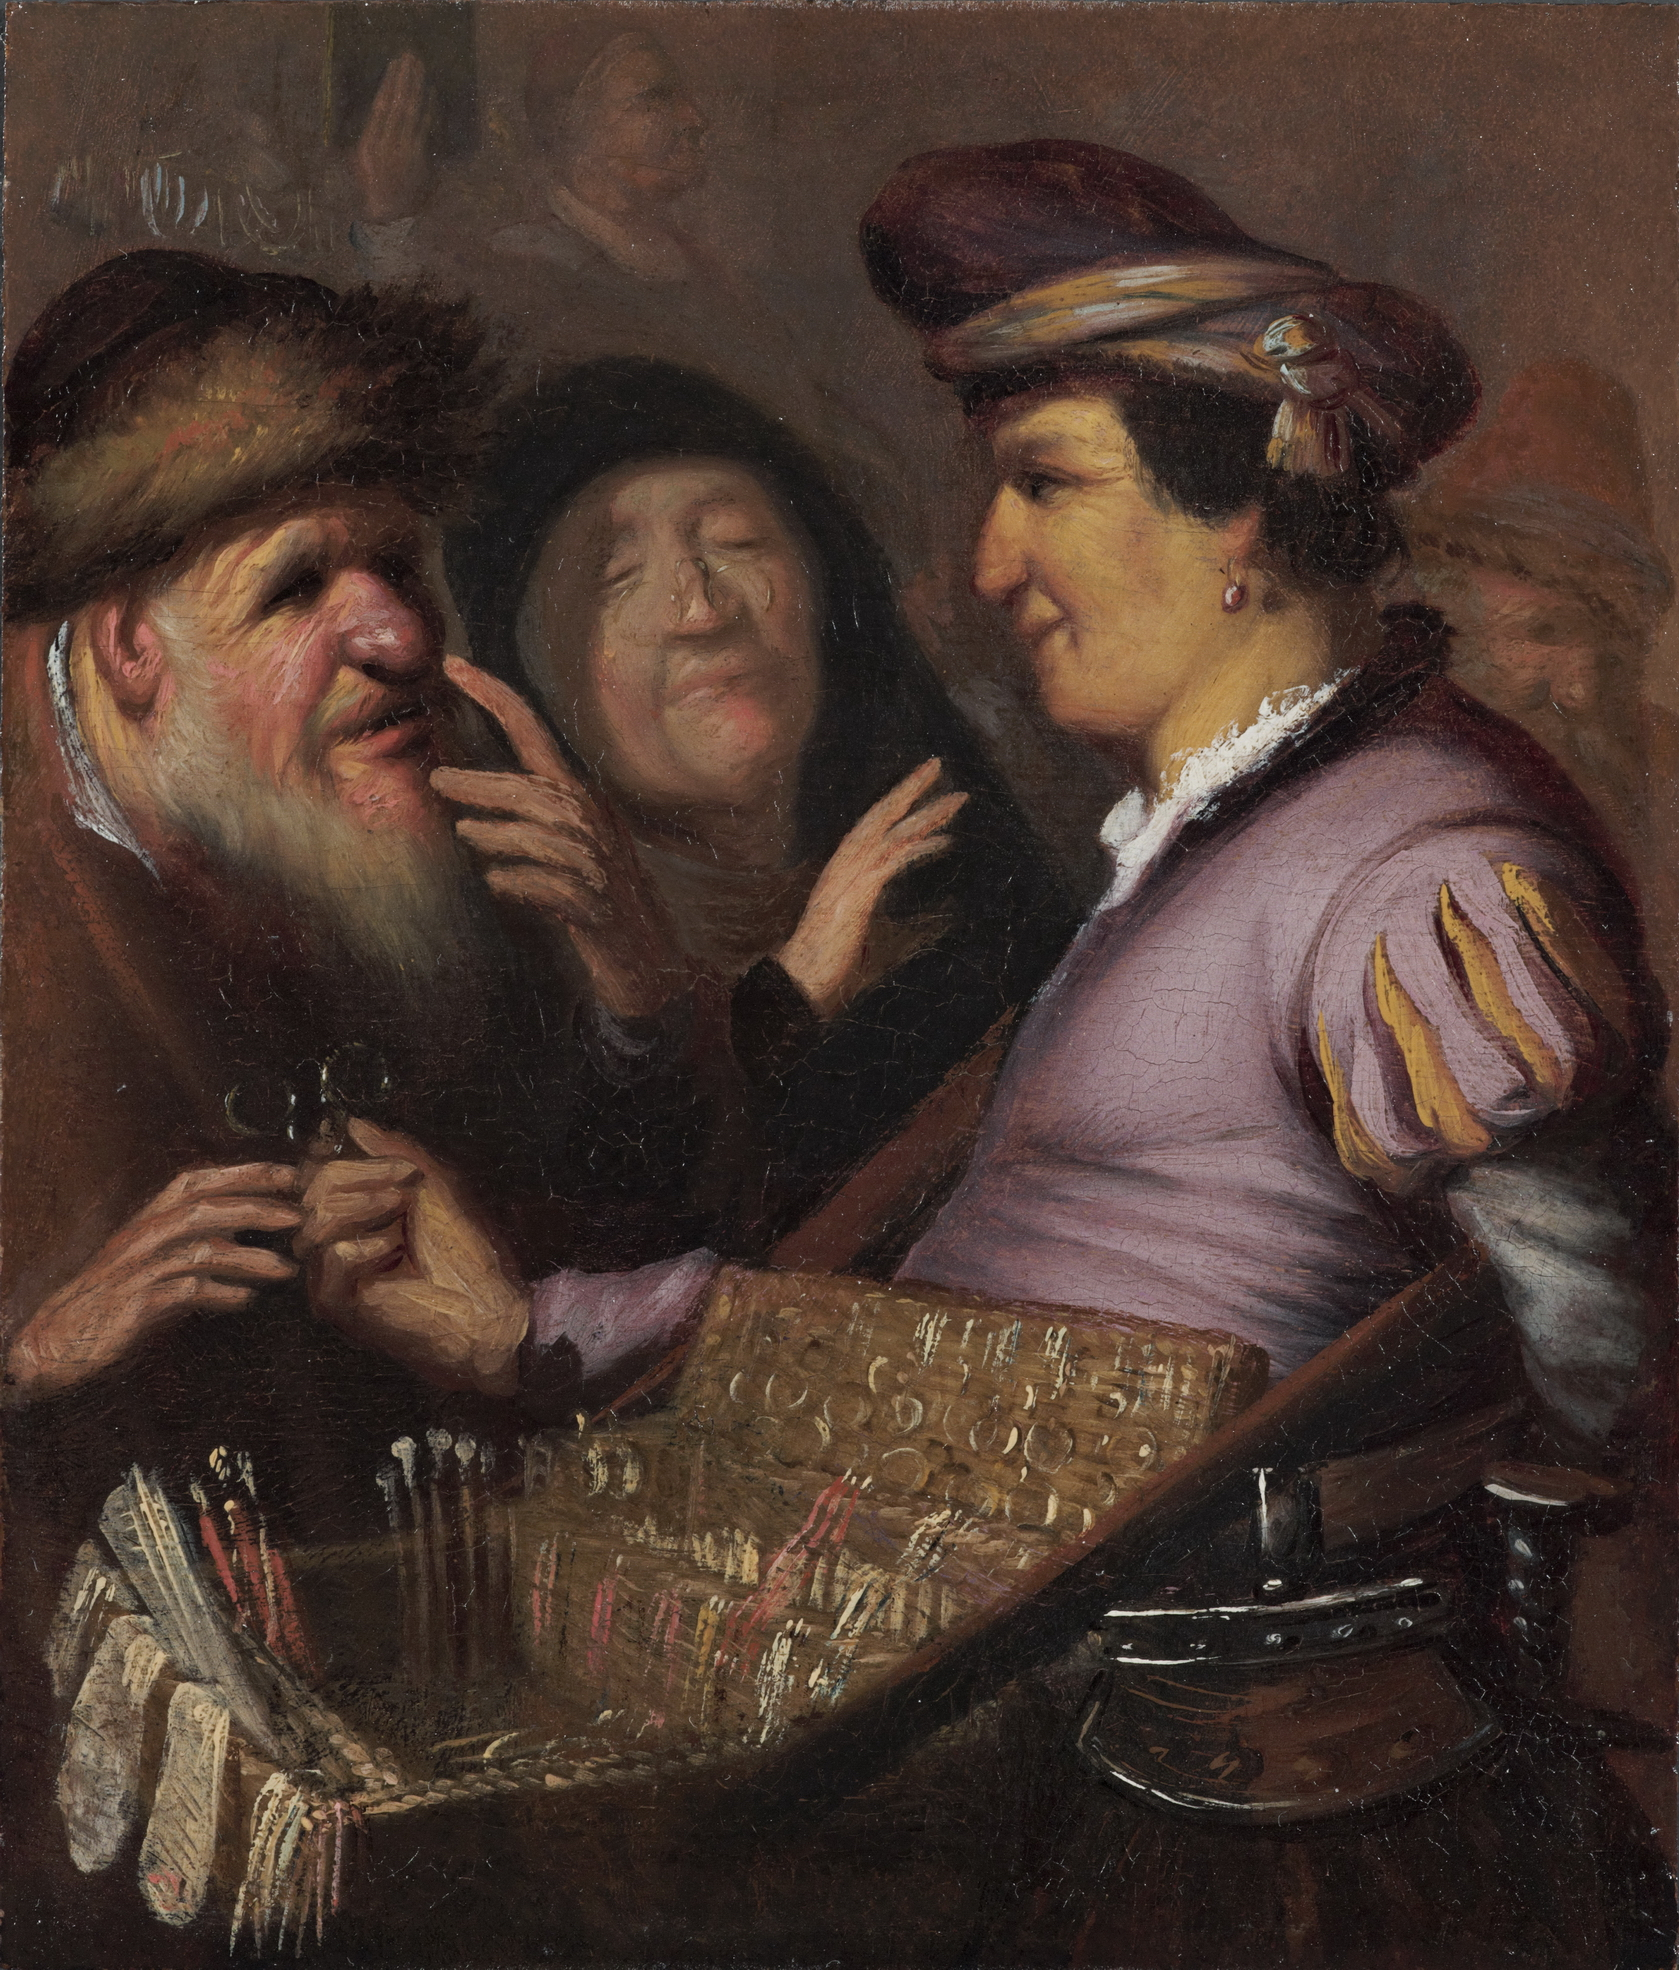 A PEDDLER SELLING SPECTACLES